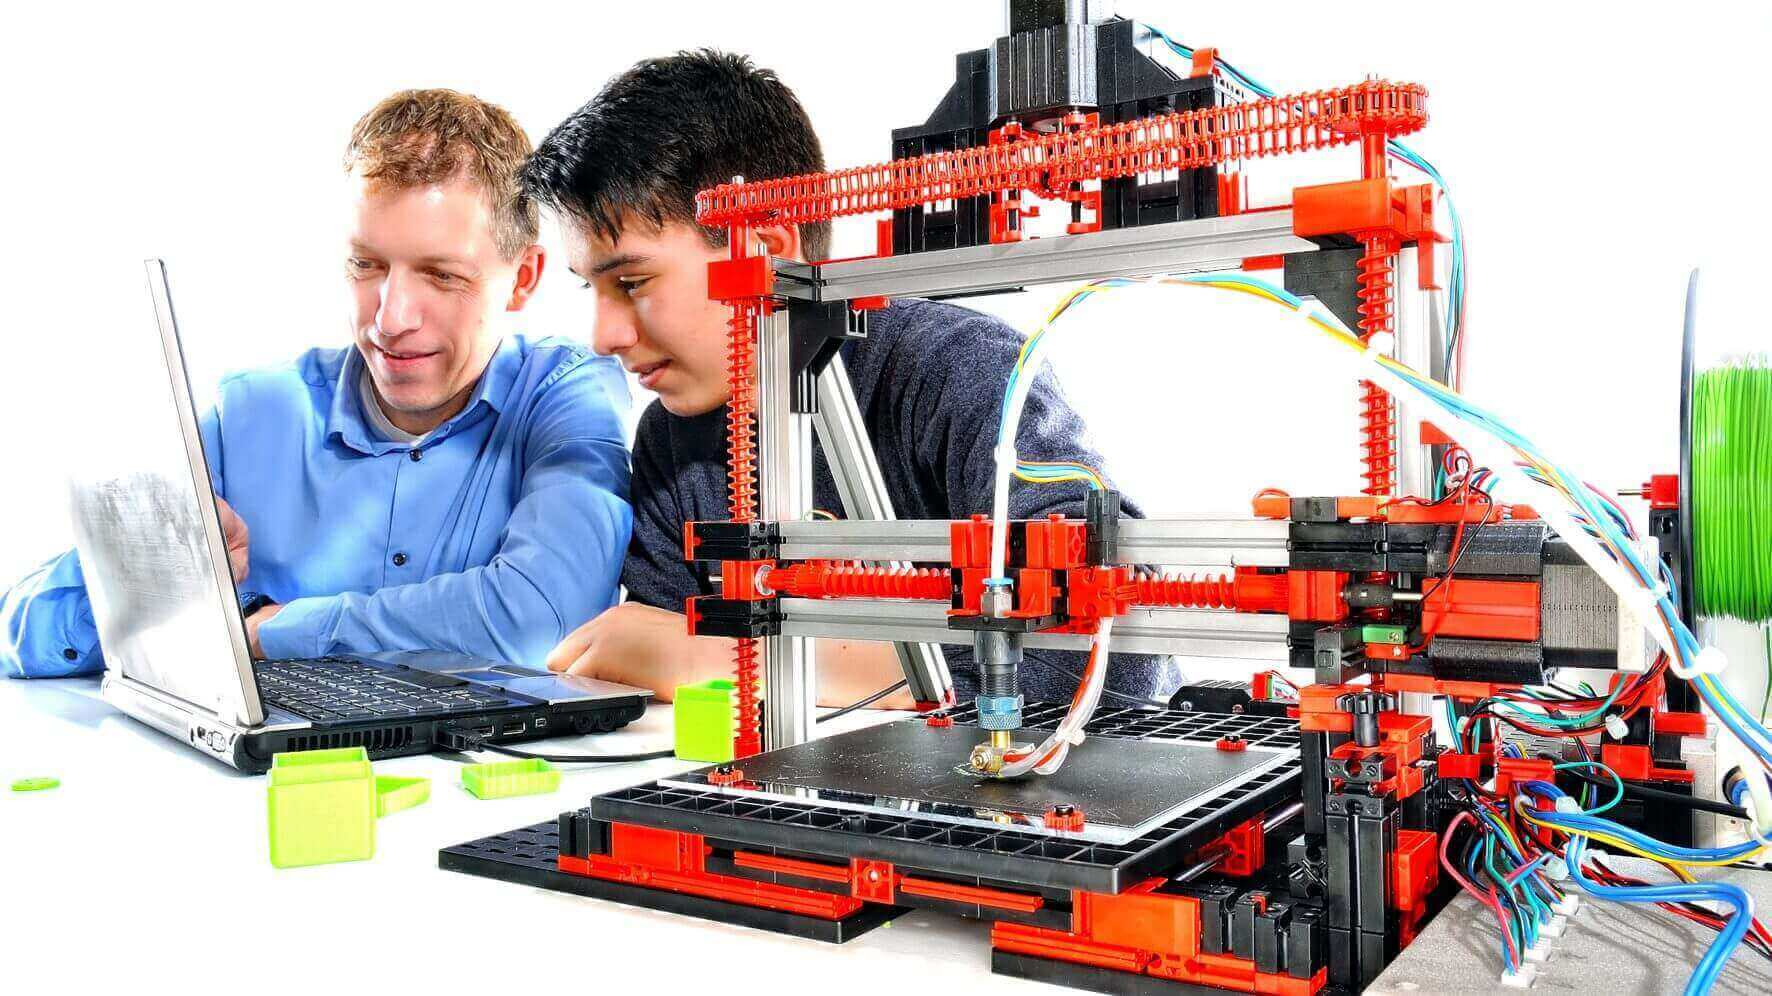 Modular 3D Printer Kit from Fischertechnik | All3DP